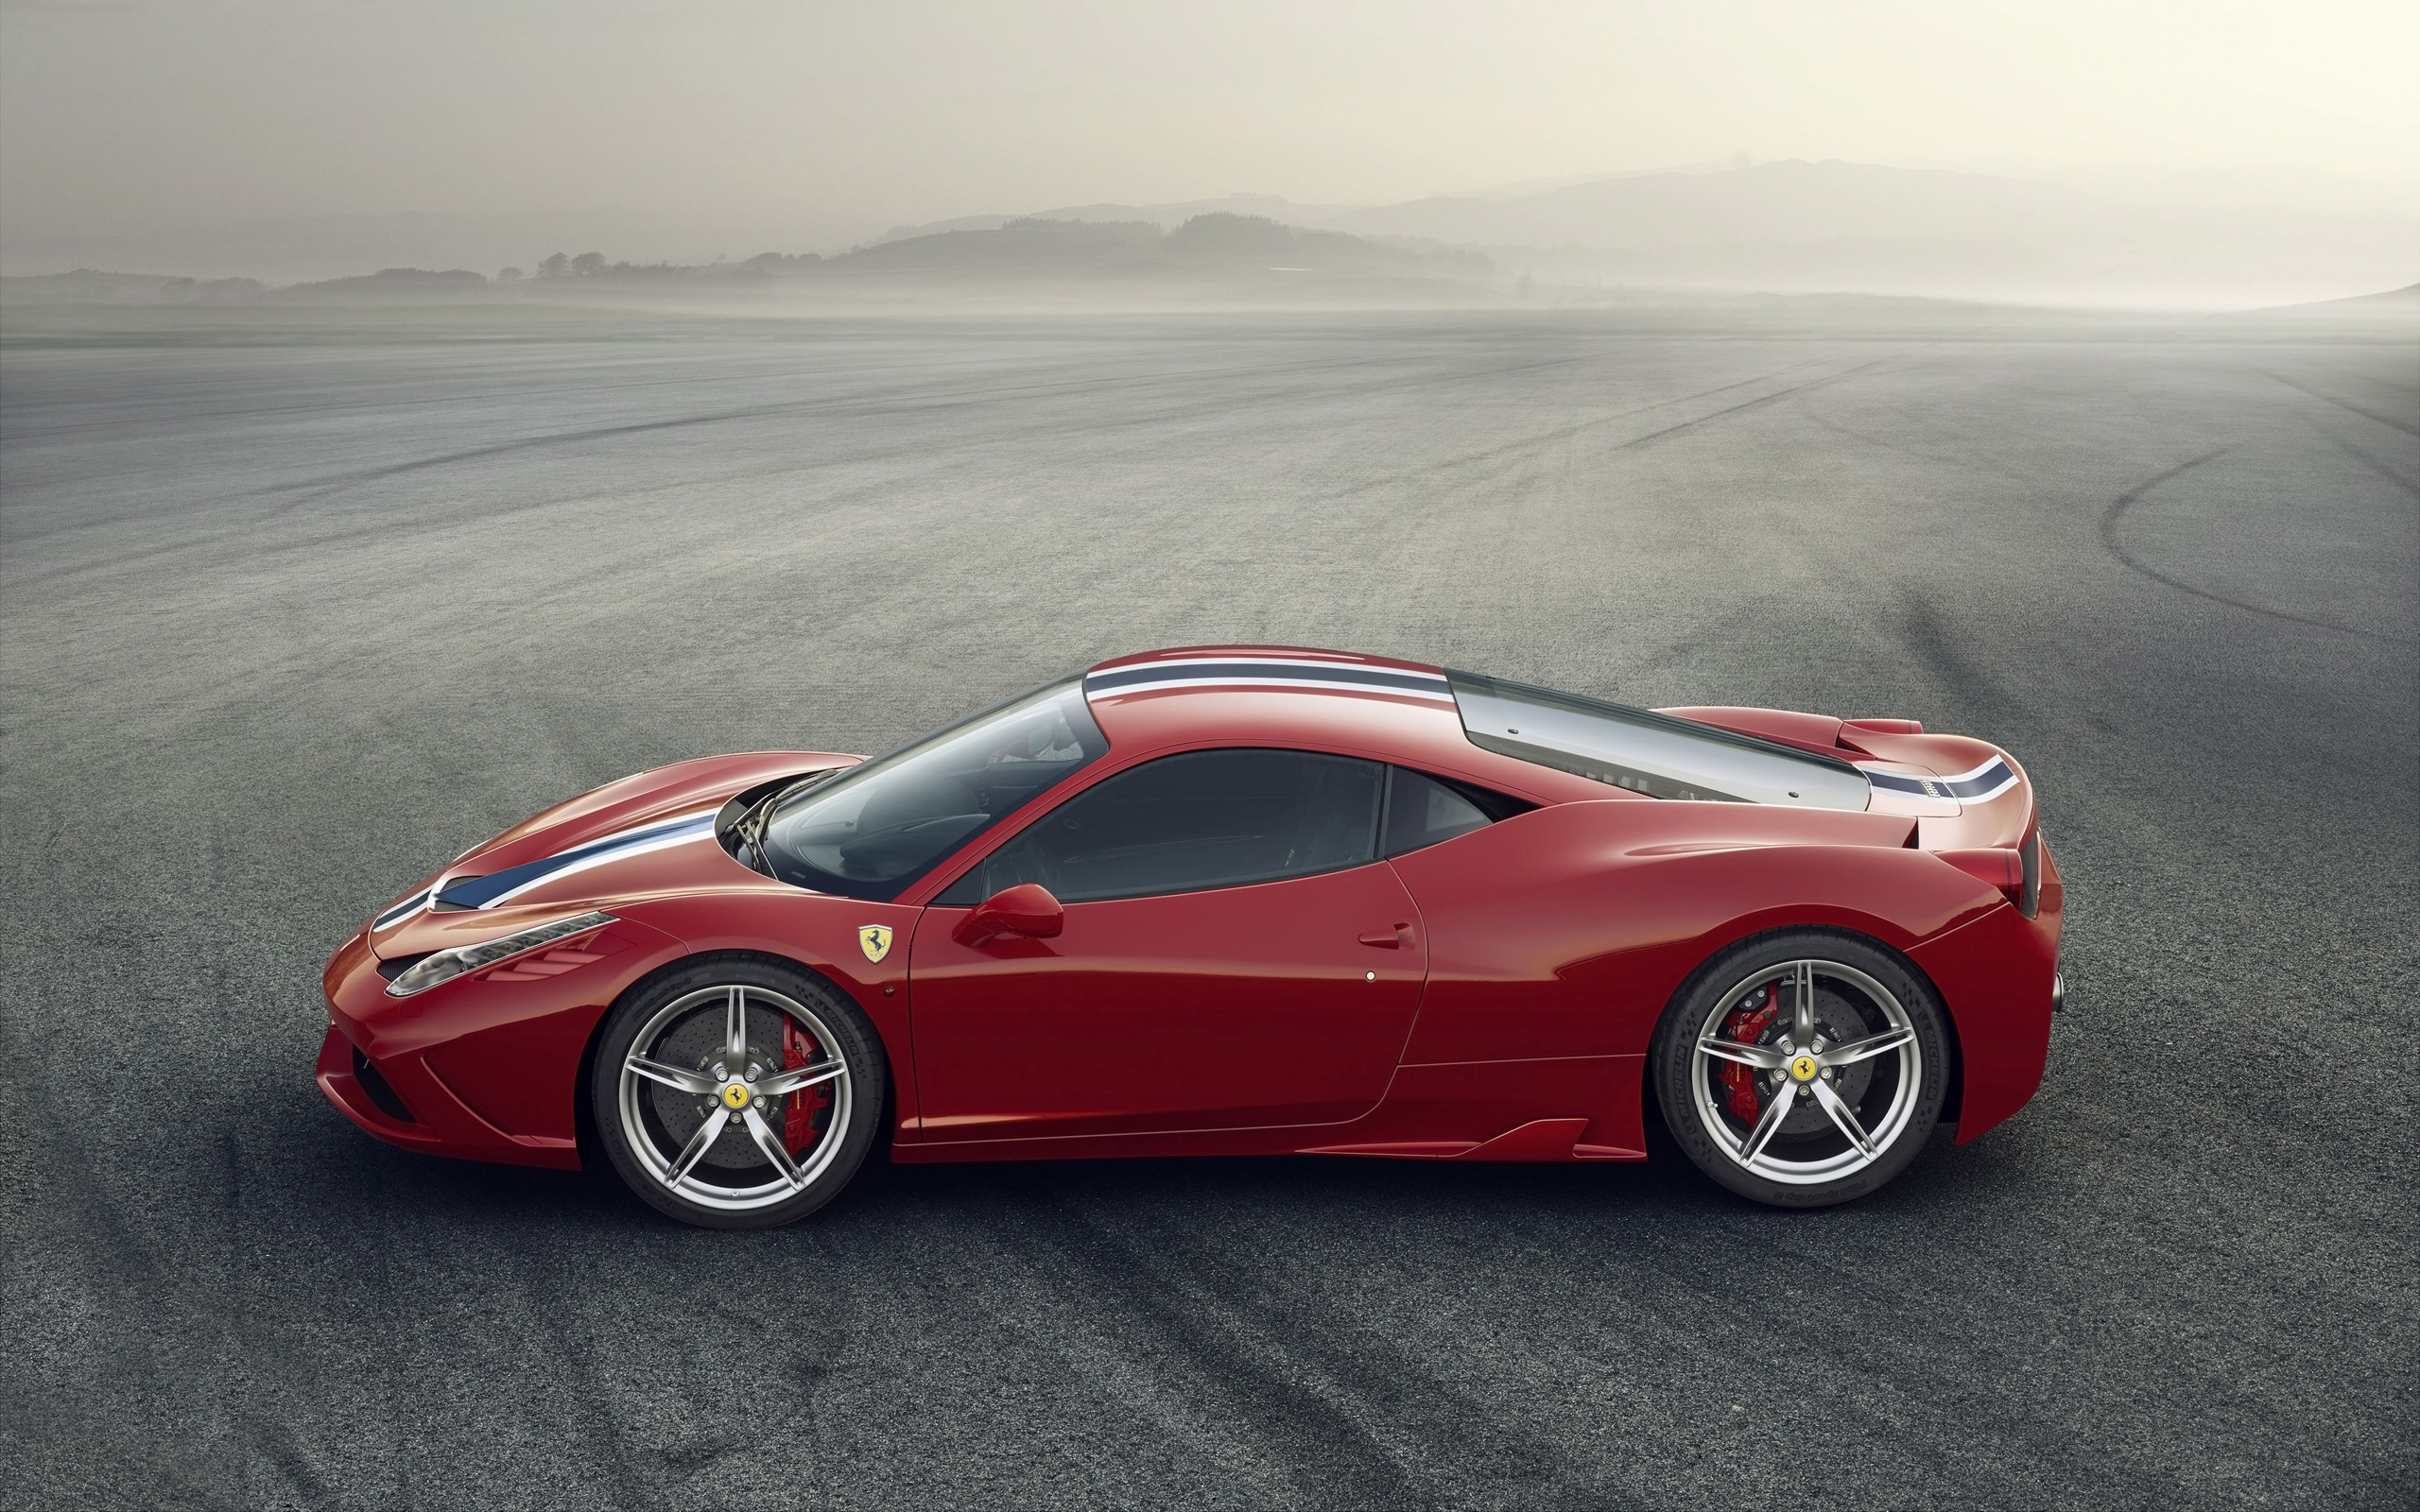 2014 ferrari 458 speciale 4 wallpaper hd car wallpapers id 3640. Black Bedroom Furniture Sets. Home Design Ideas